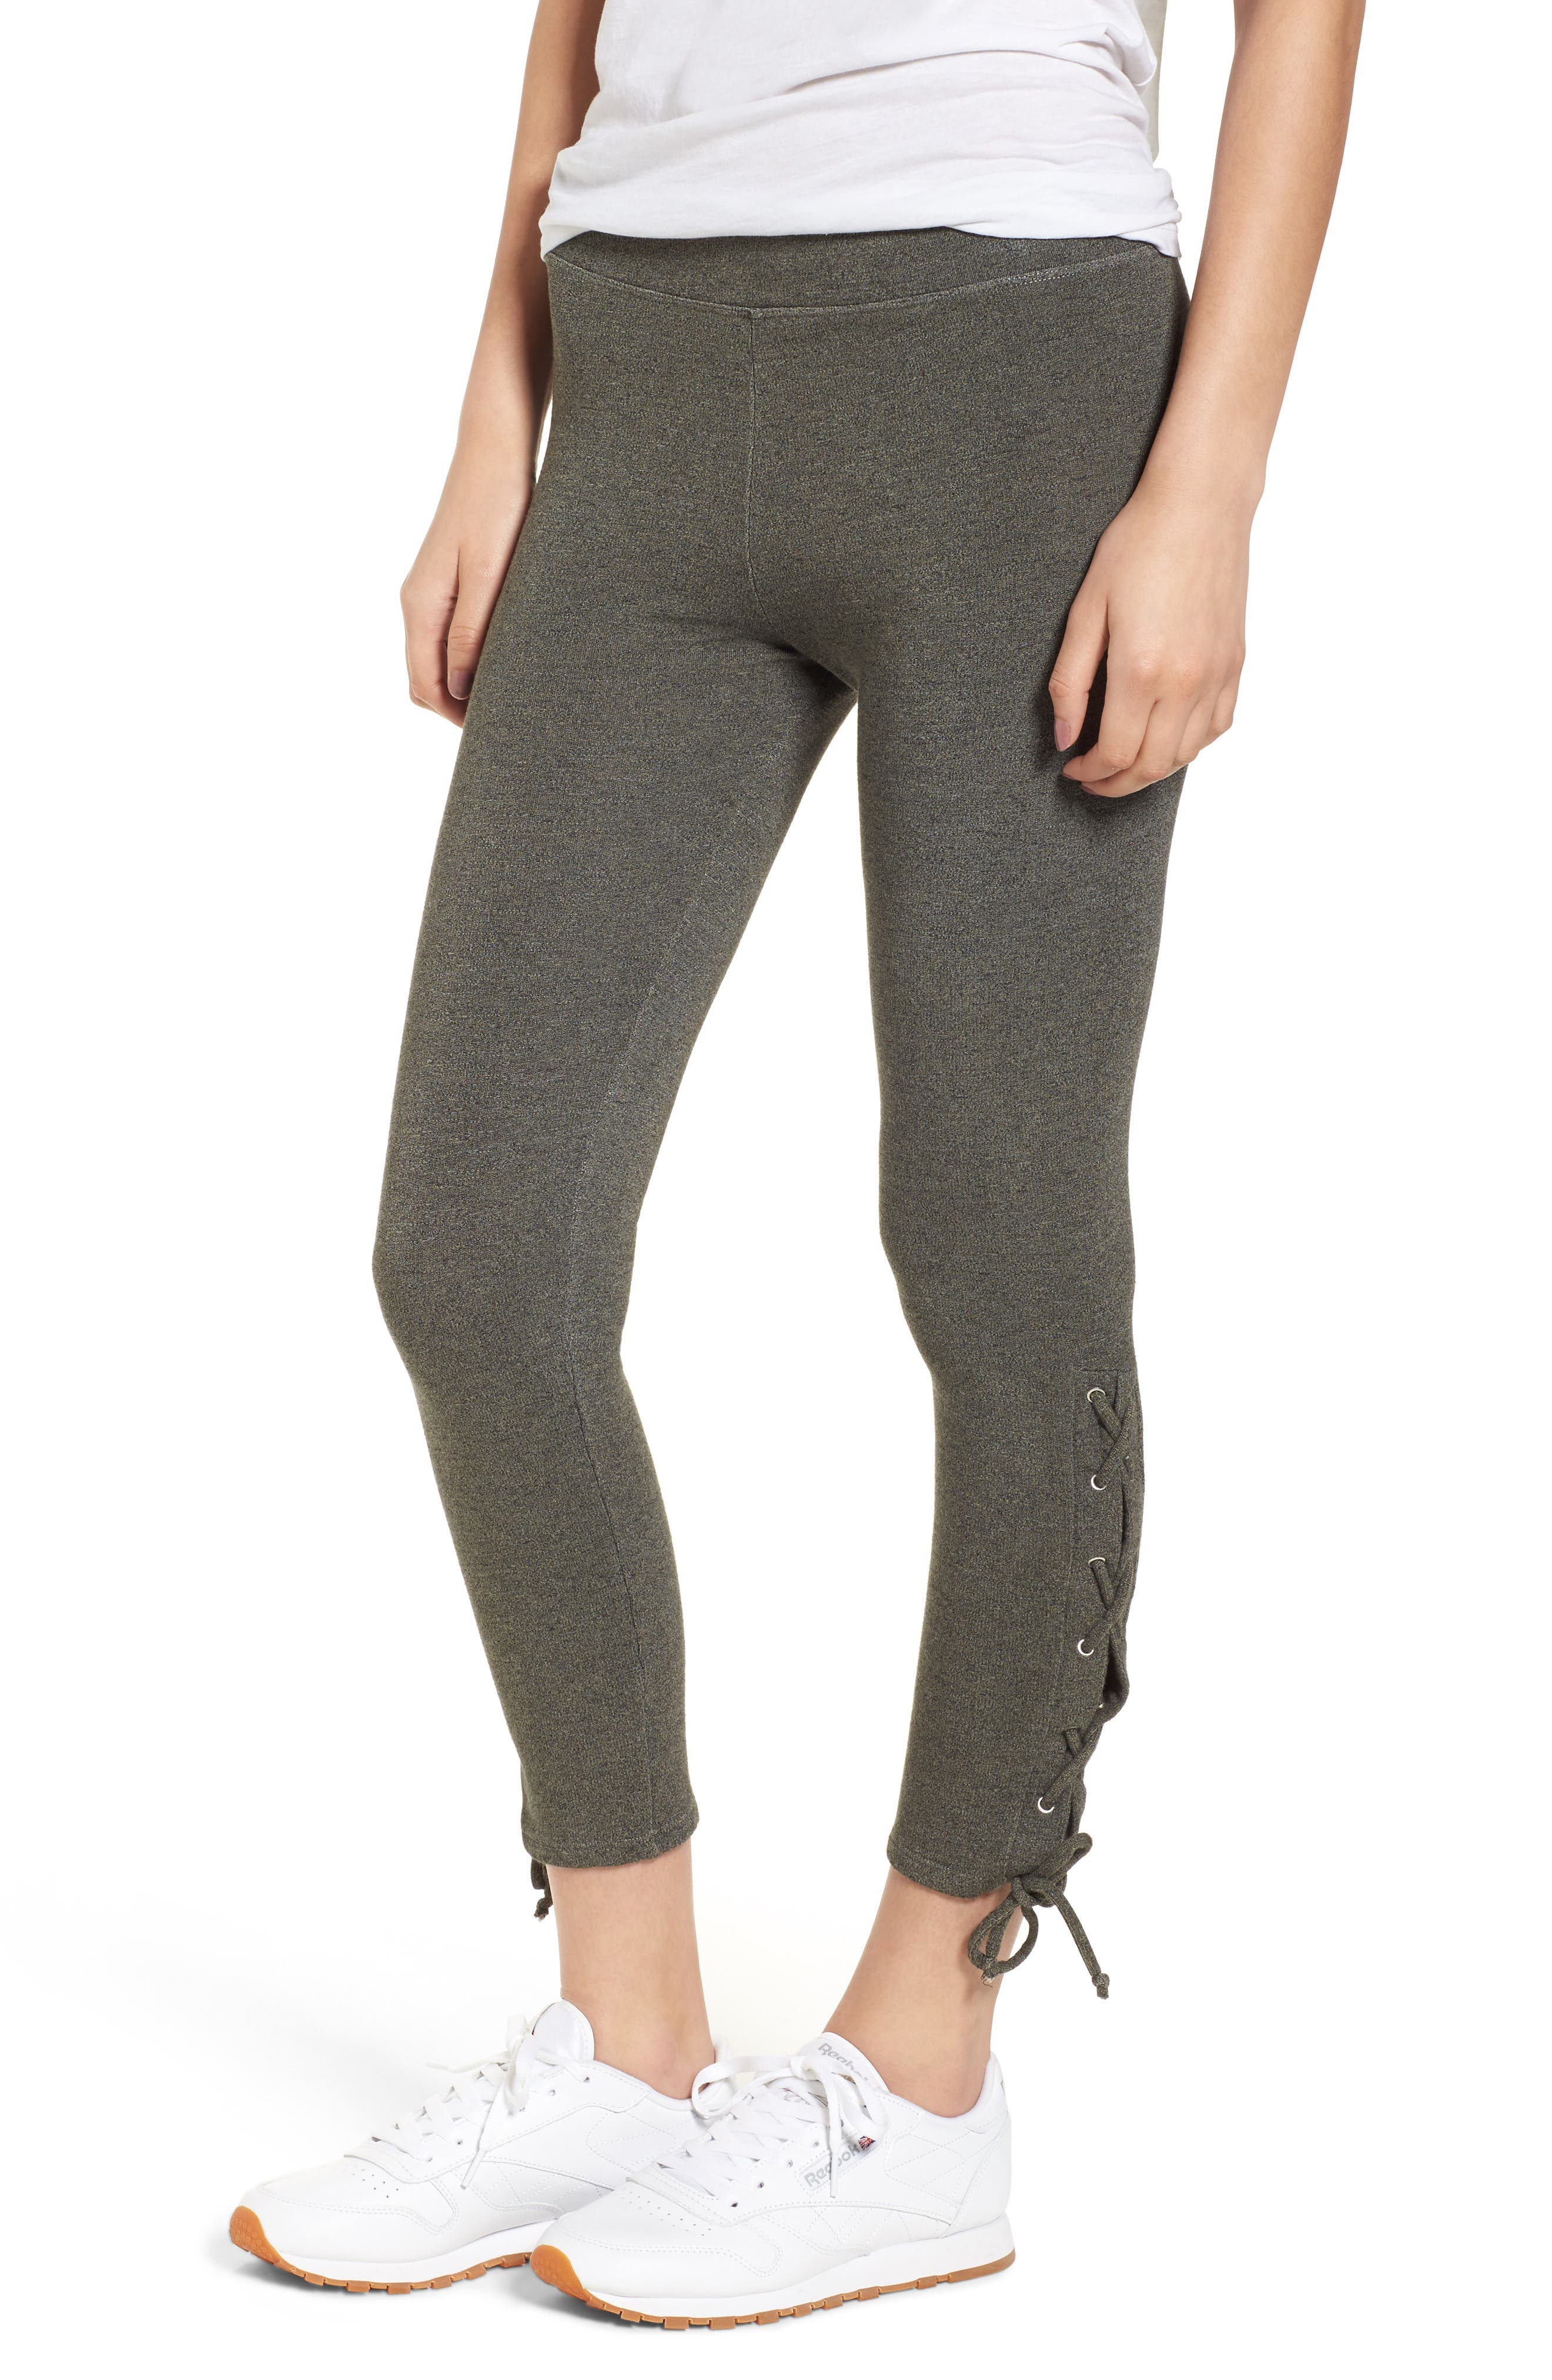 LACE-UP ANKLE LEGGINGS